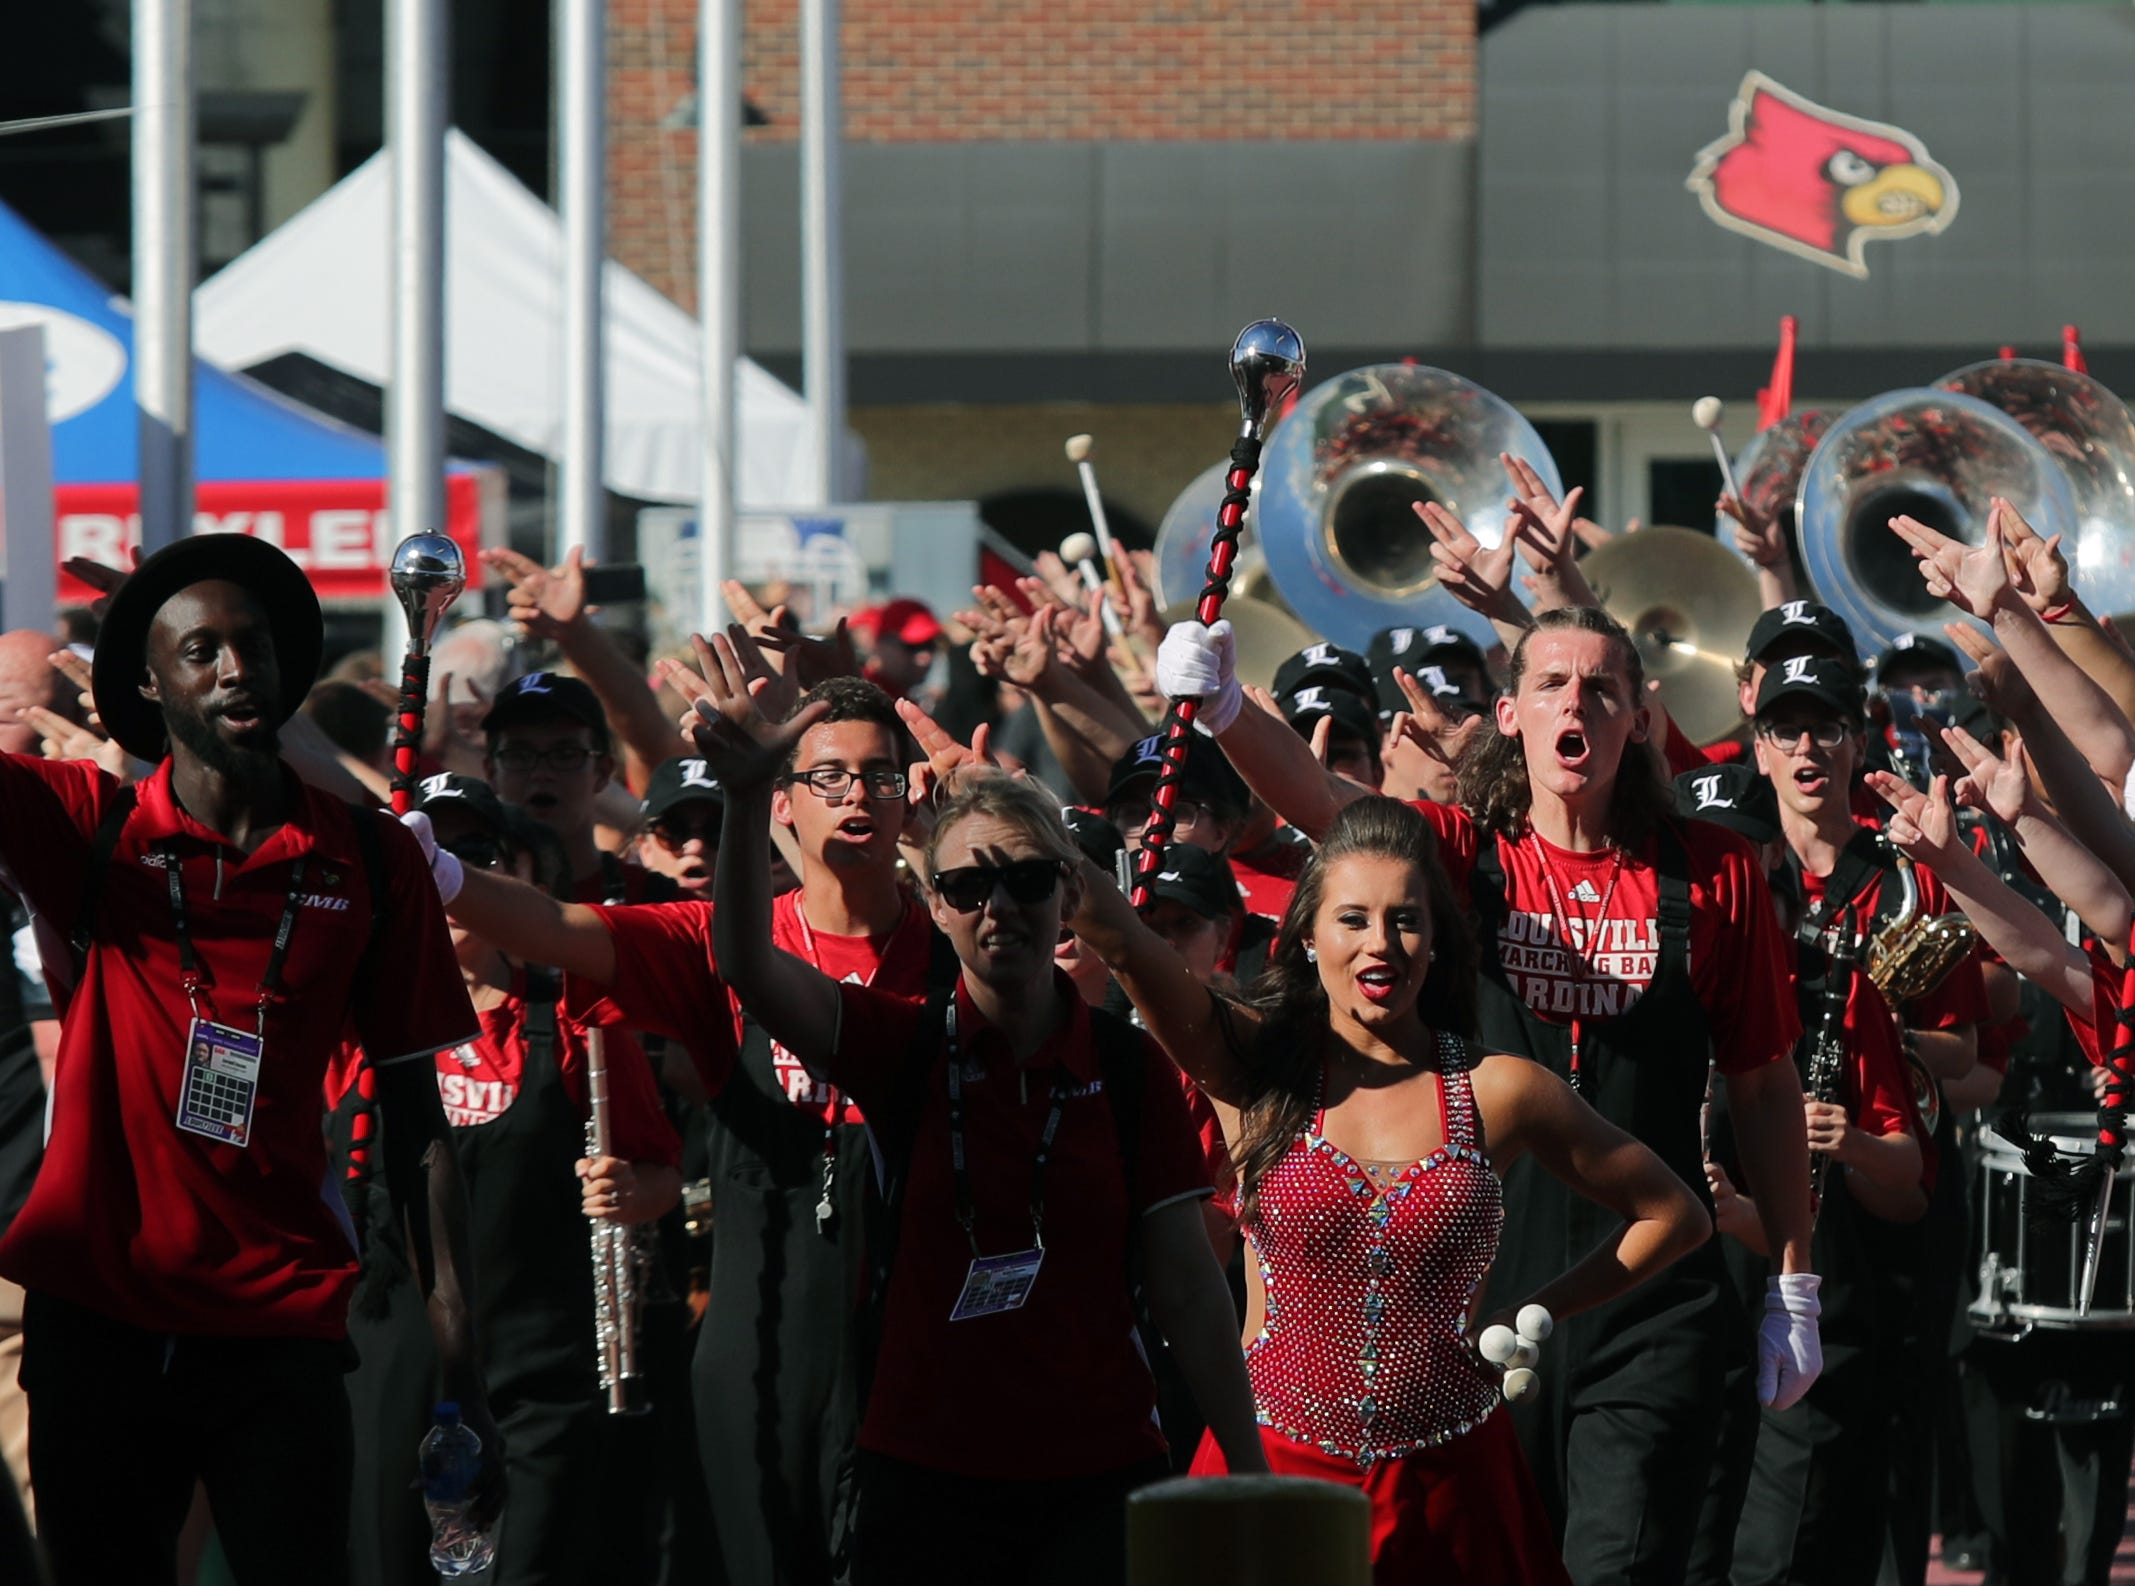 The Louisville Marching Band entertains the crowd before the Card March.